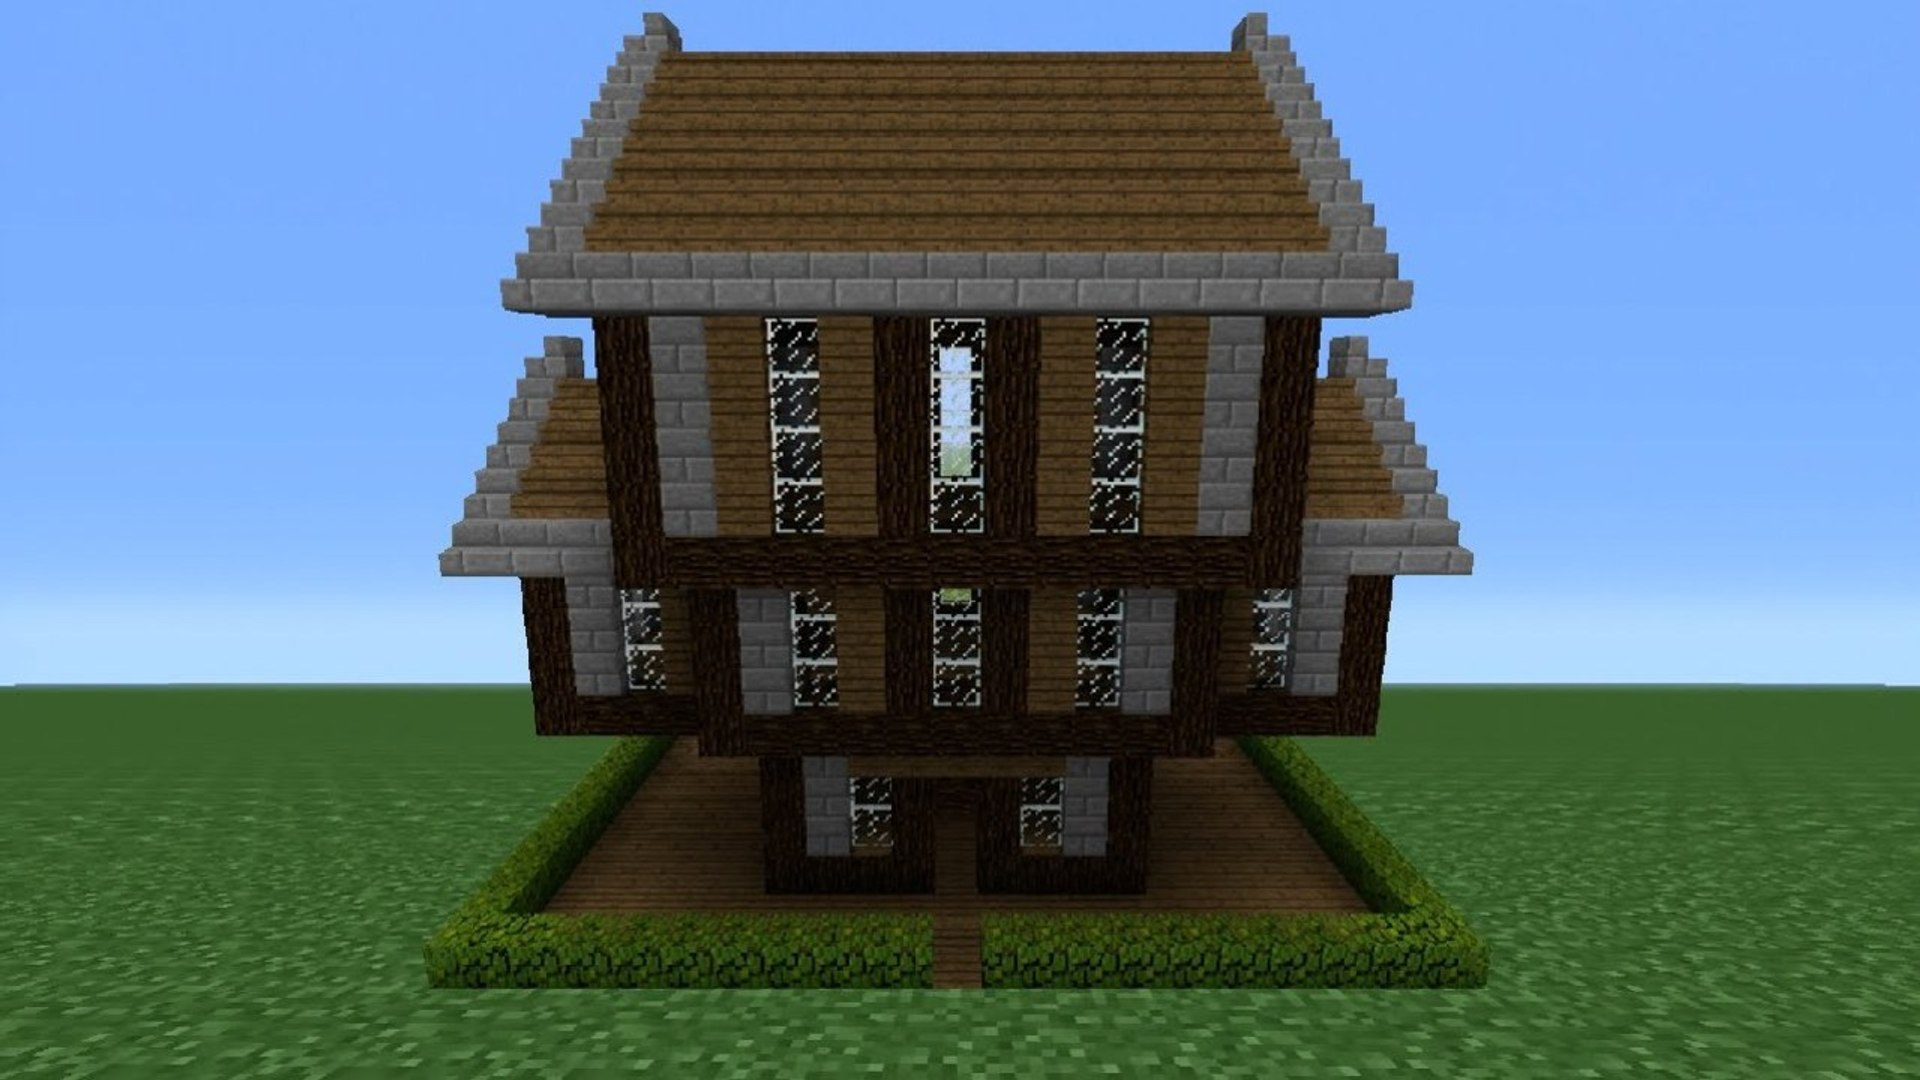 Minecraft Tutorial How To Make A Stone Wood House 2 Video Dailymotion